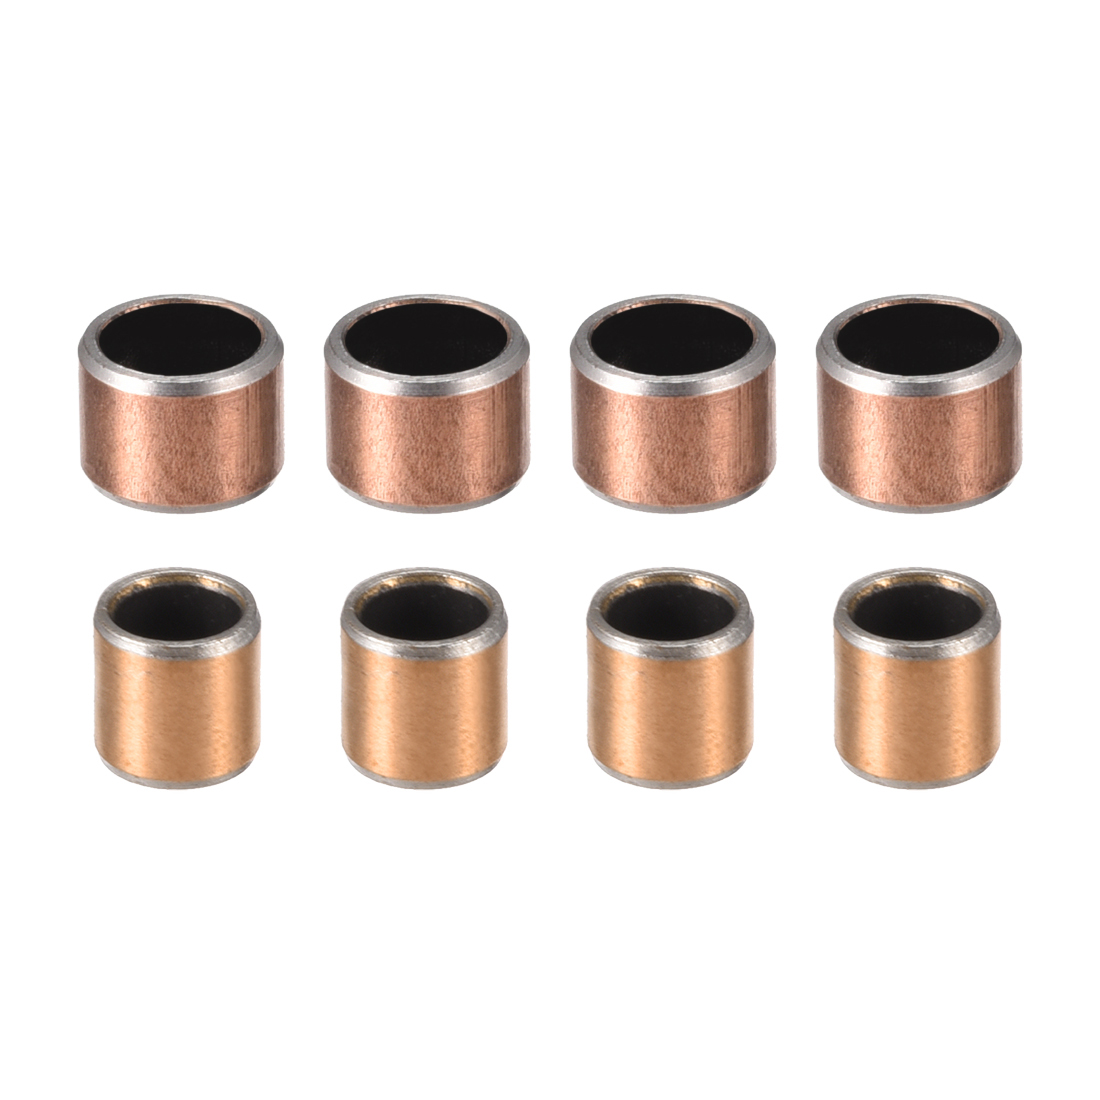 Uxcell 1-10pc Sleeve Plain Bearings 6mm ID 8mm OD Wrapped Oilless Self-lubricating Bushings 6x8x5mm 6x8x6mm 6x8x8mm 6x8x15mm